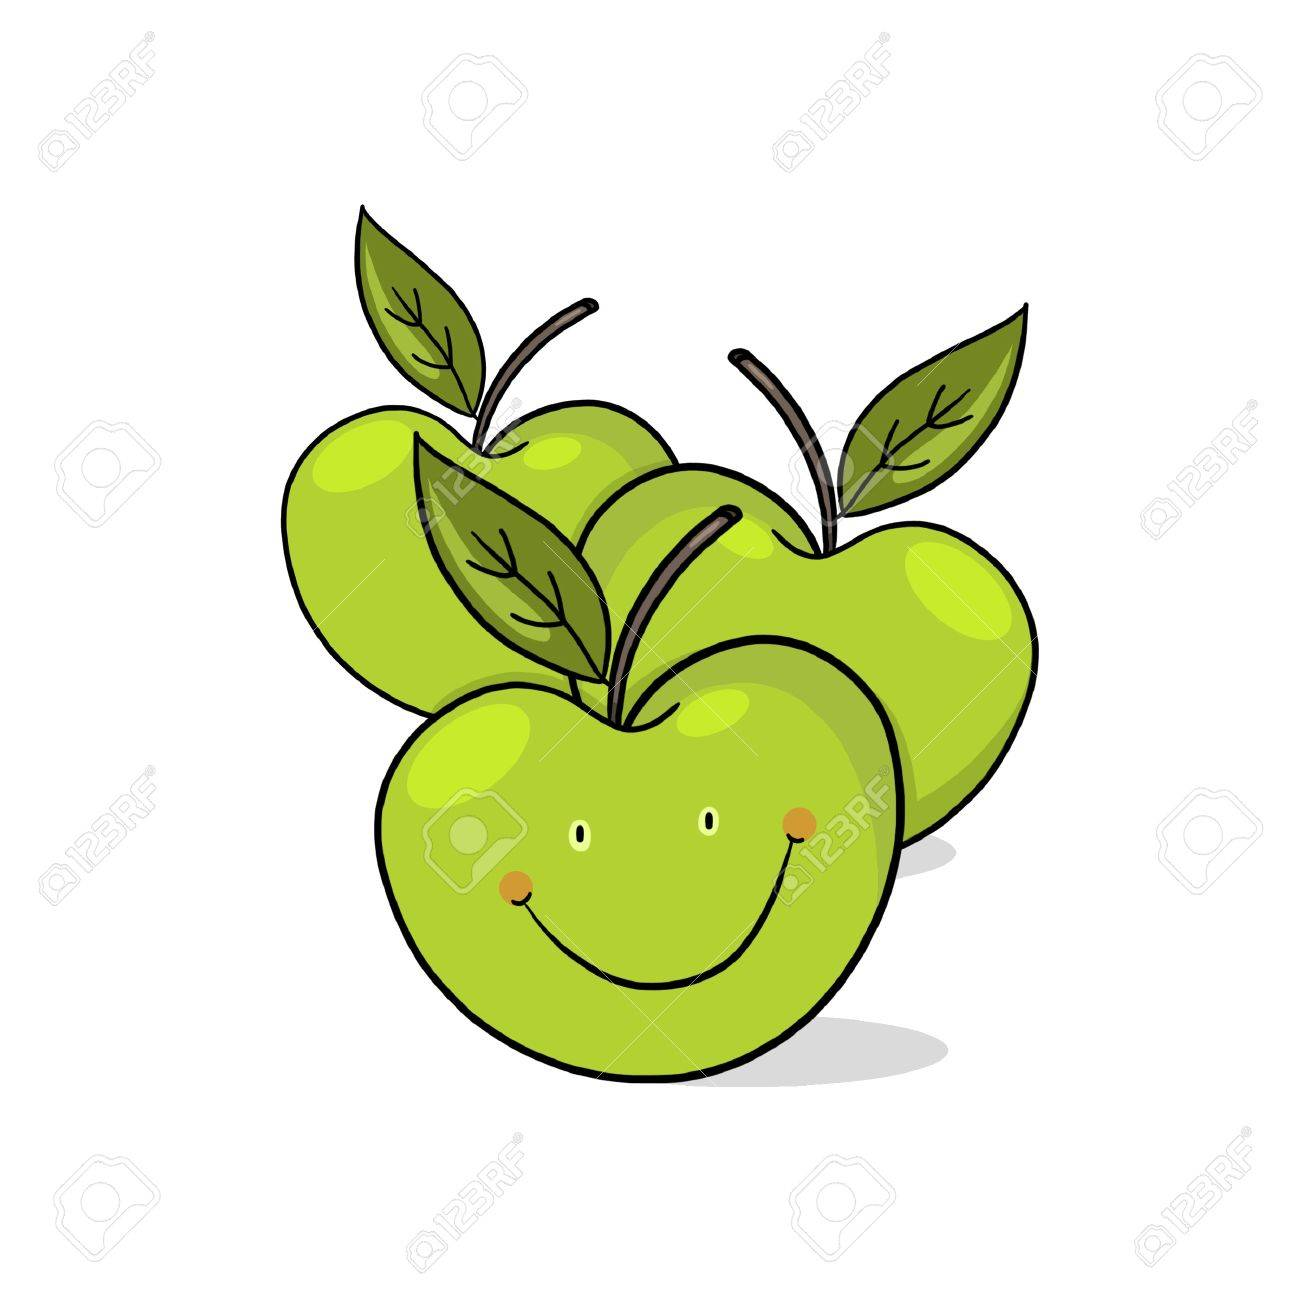 Apples Drawing at GetDrawings.com | Free for personal use Apples ...